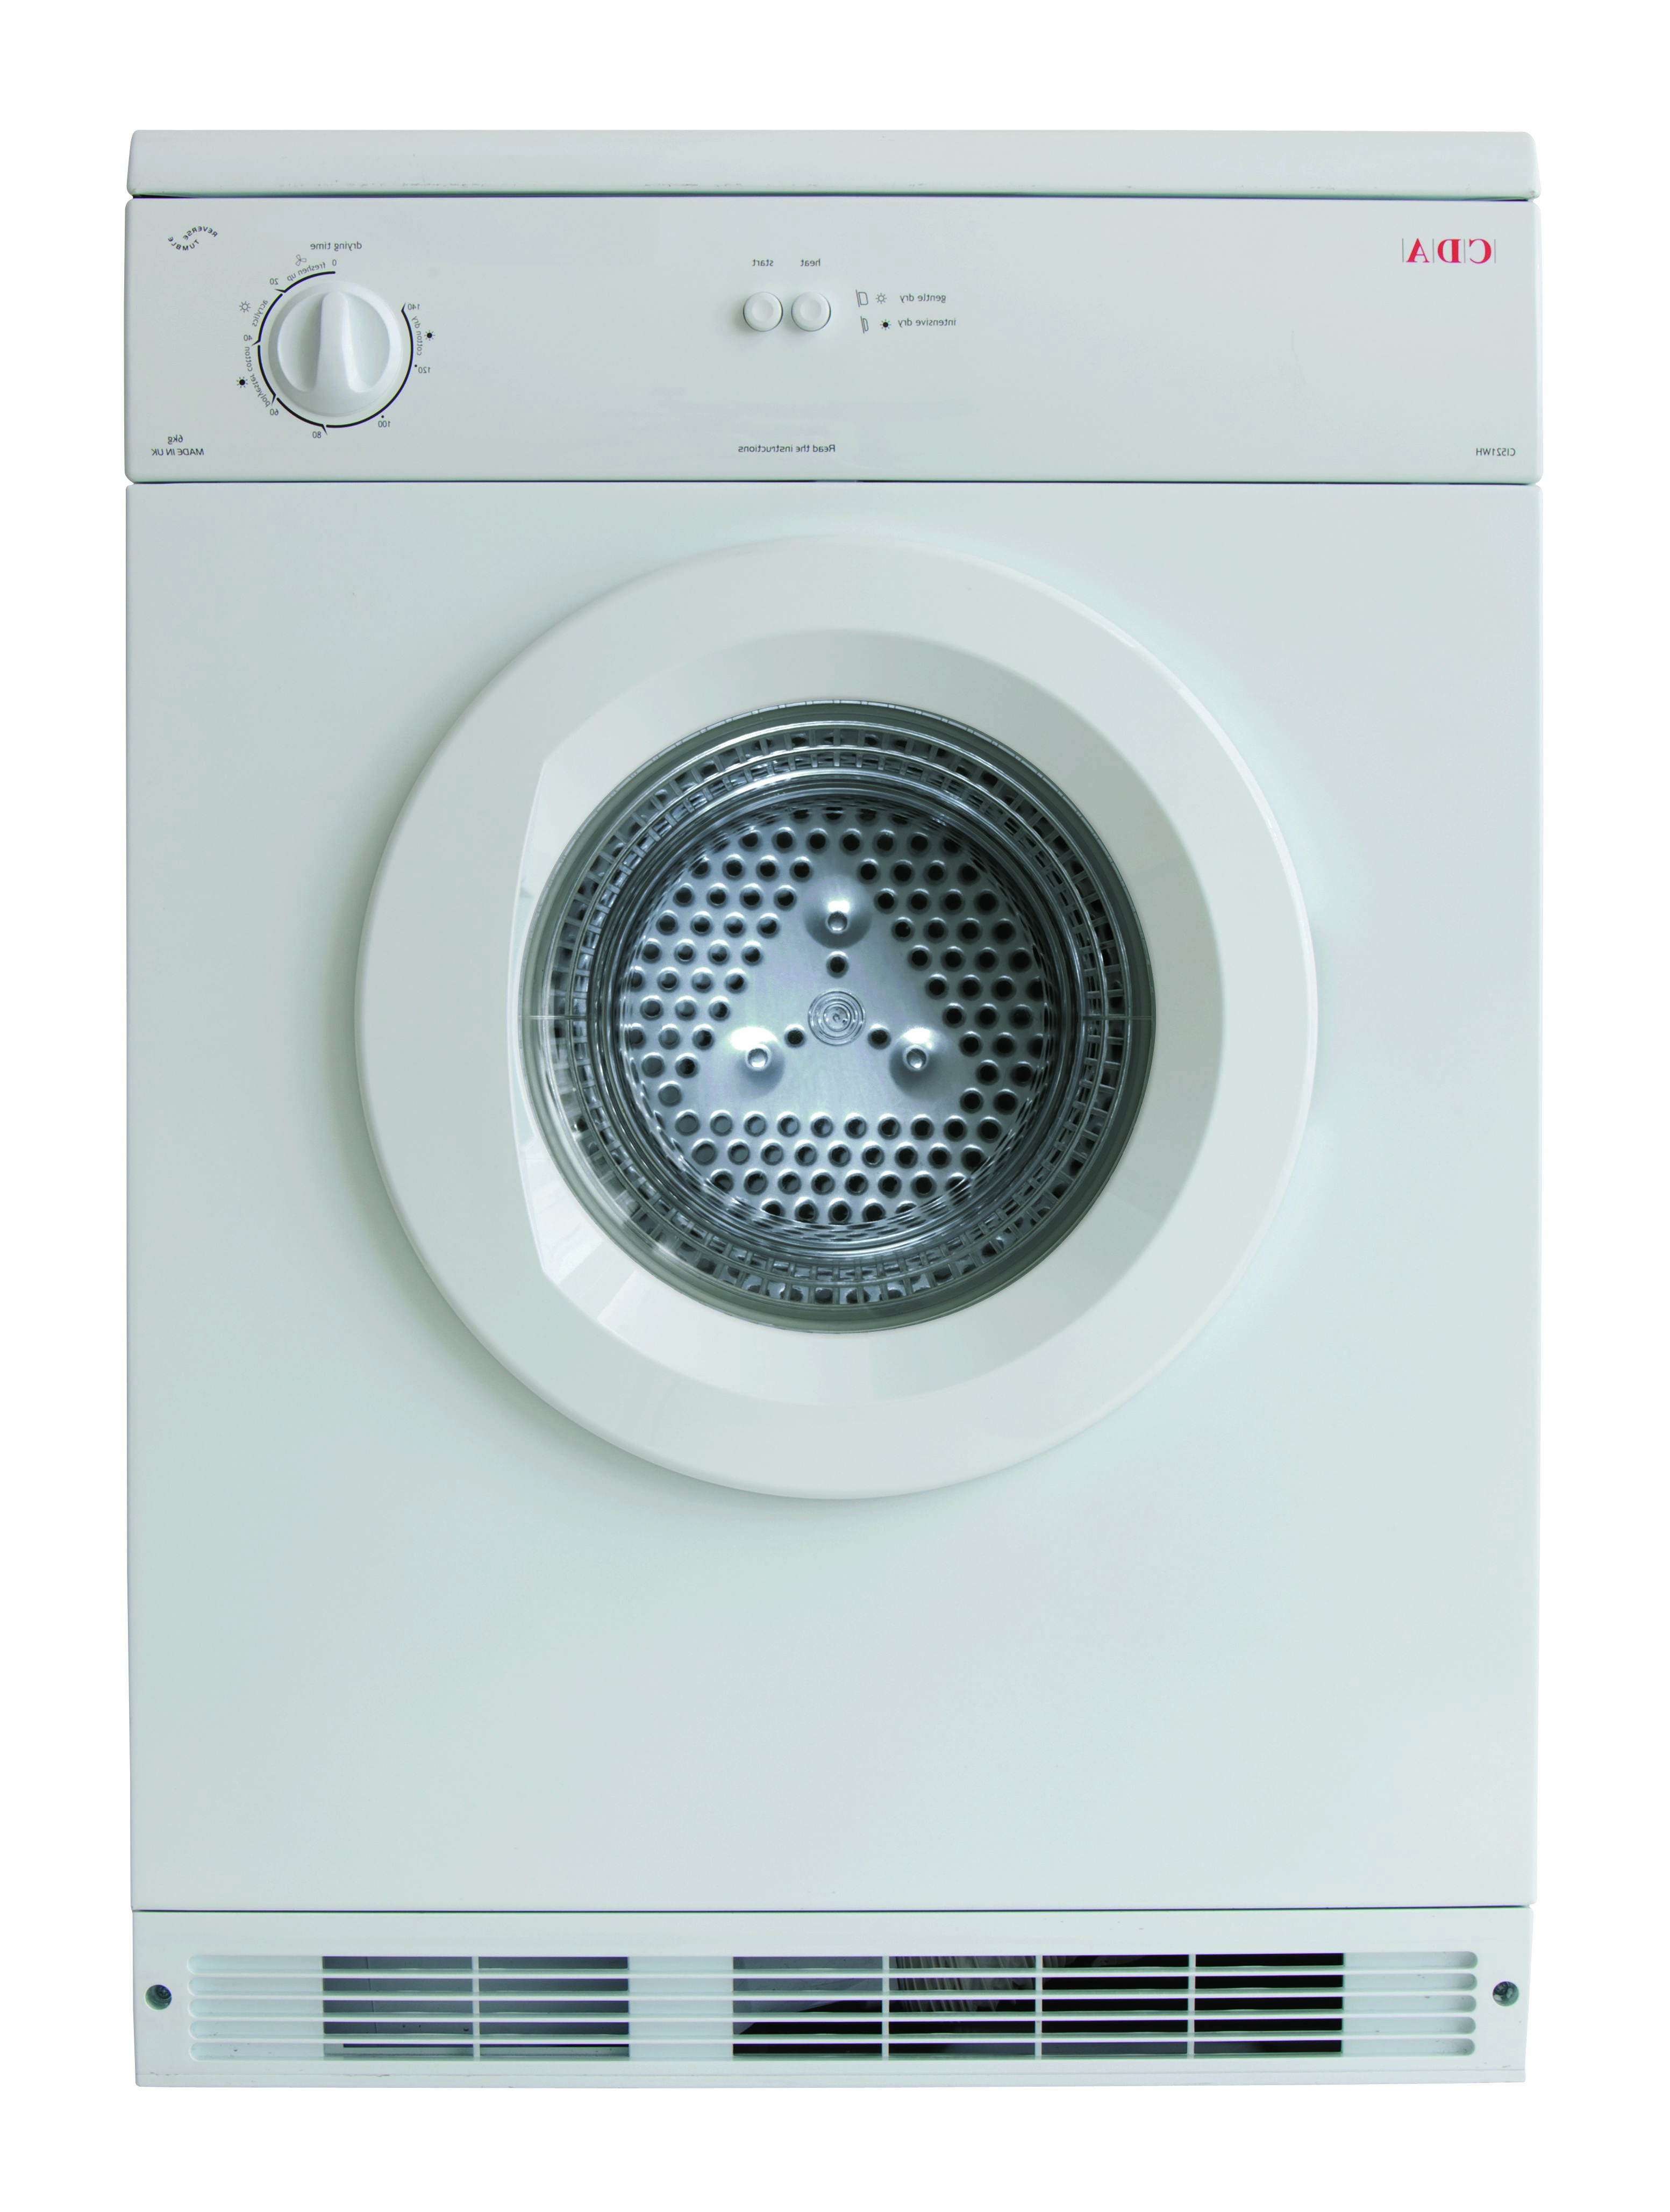 Bwe Tumble Dryer ~ Kg tumble dryers the minimalist way of drying clothes